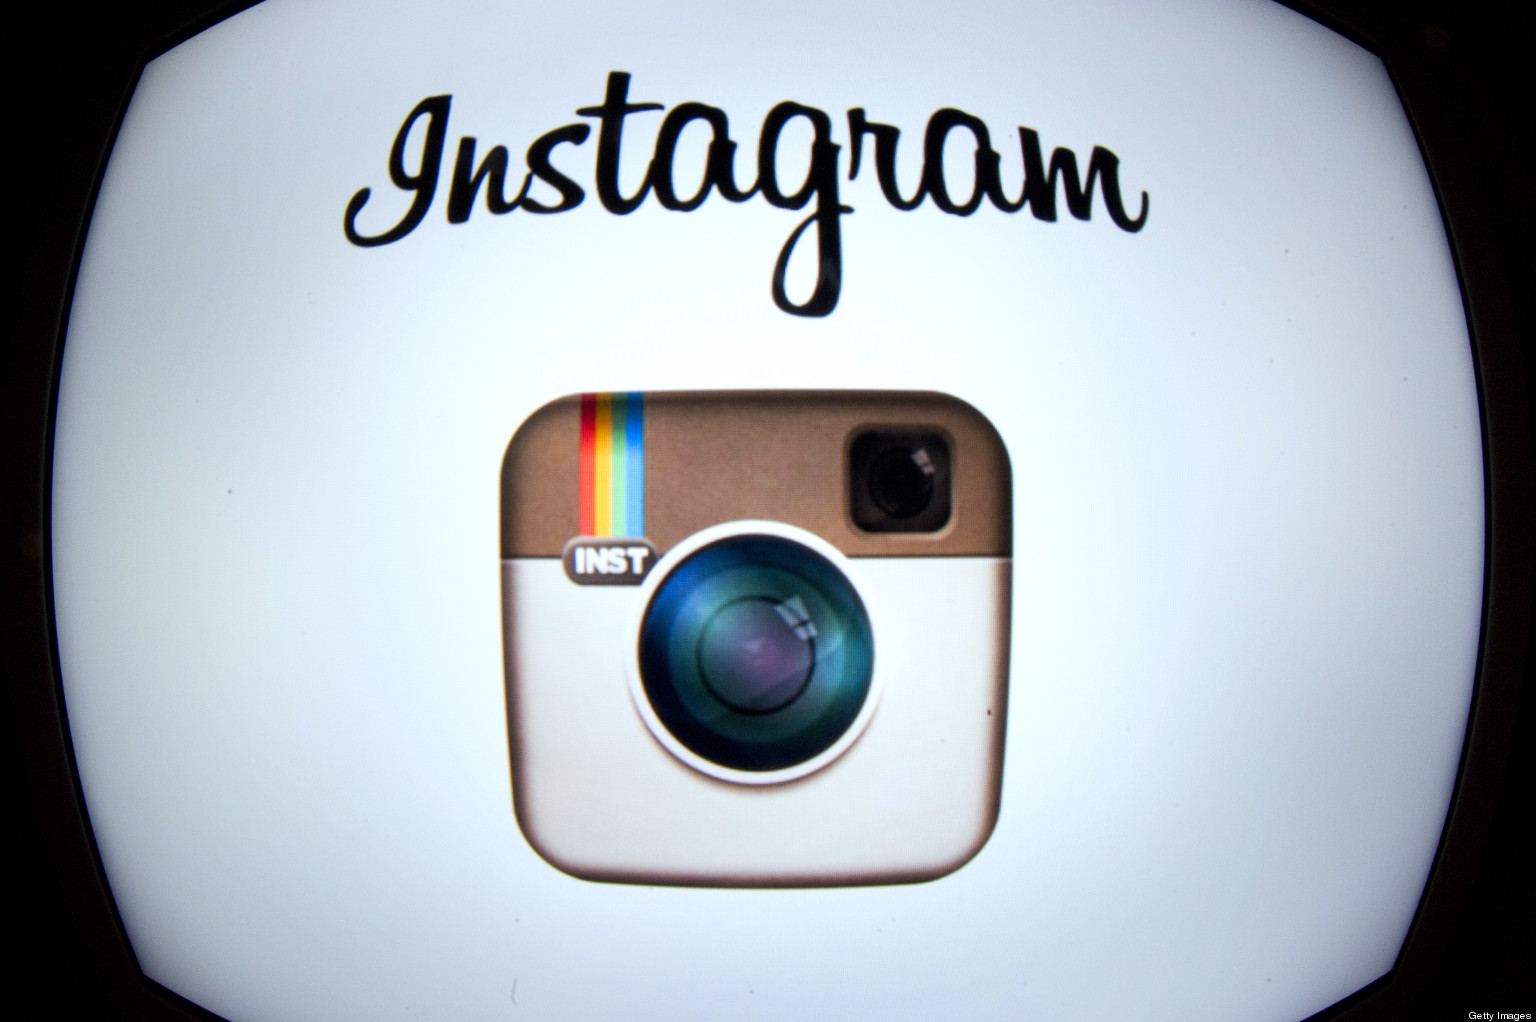 FRANCE-US-IT-INTERNET-TELECOM-INSTAGRAM